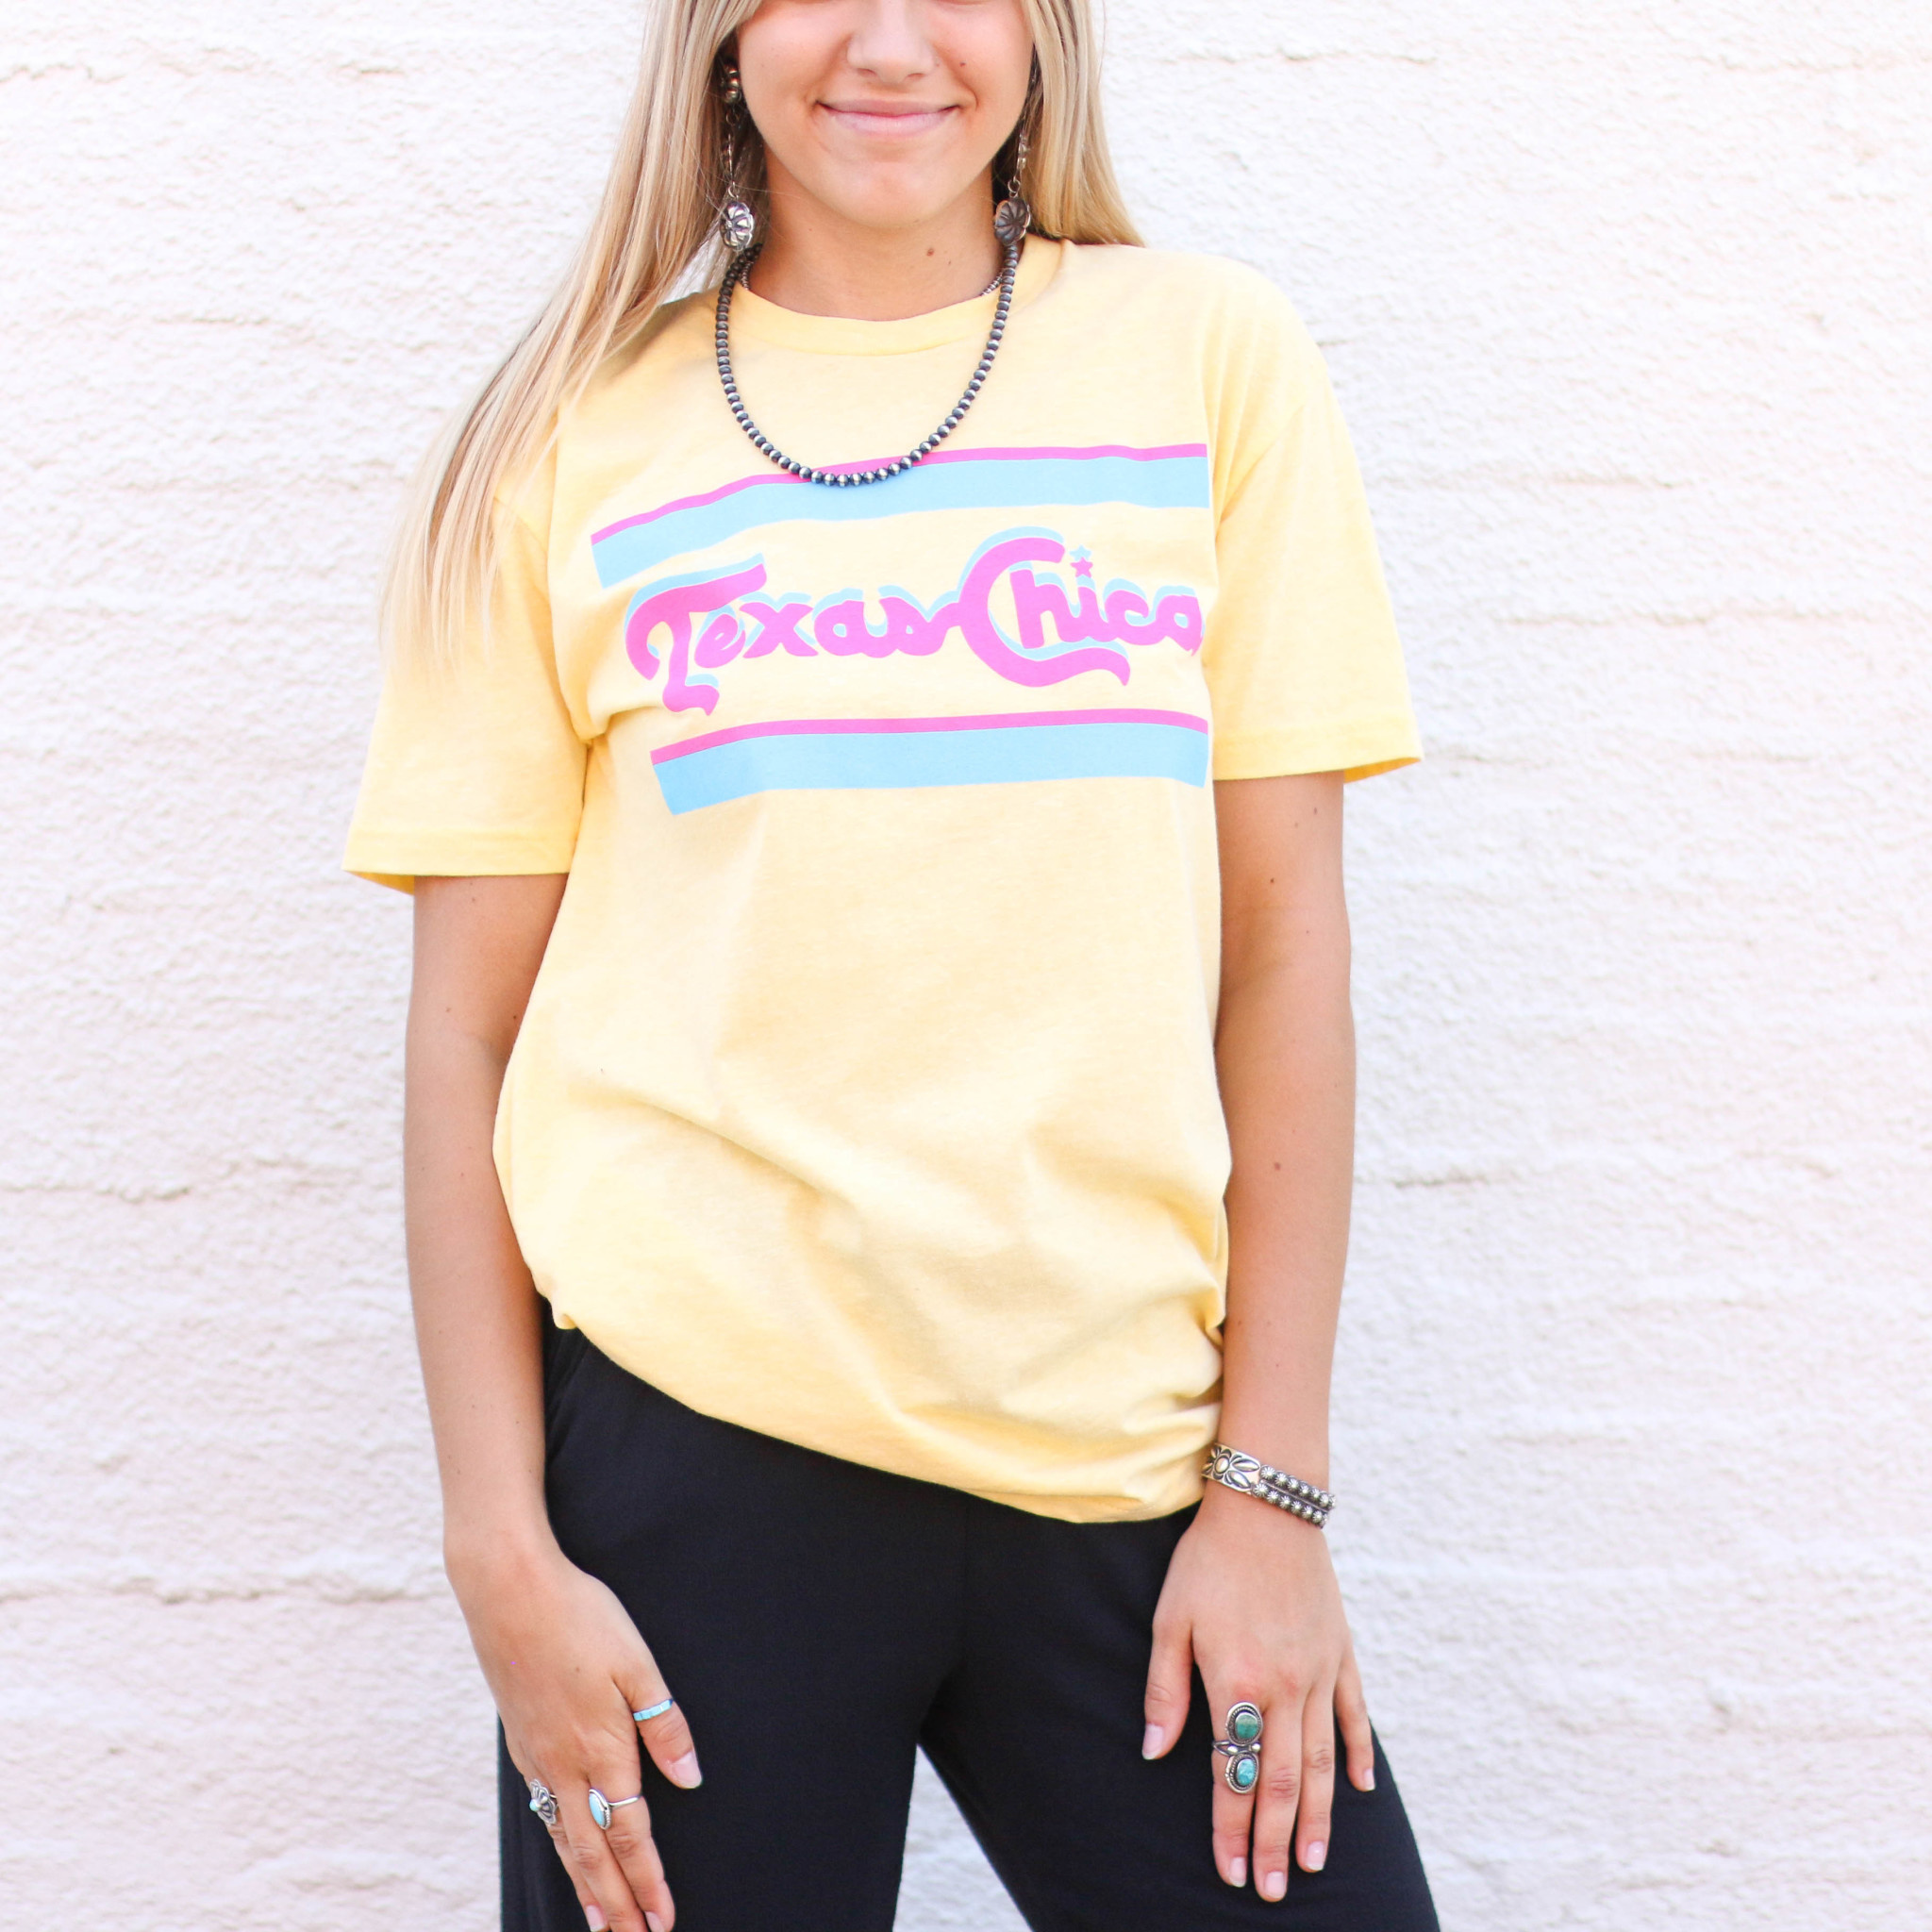 Punchy's Retro Texas Chica Tee